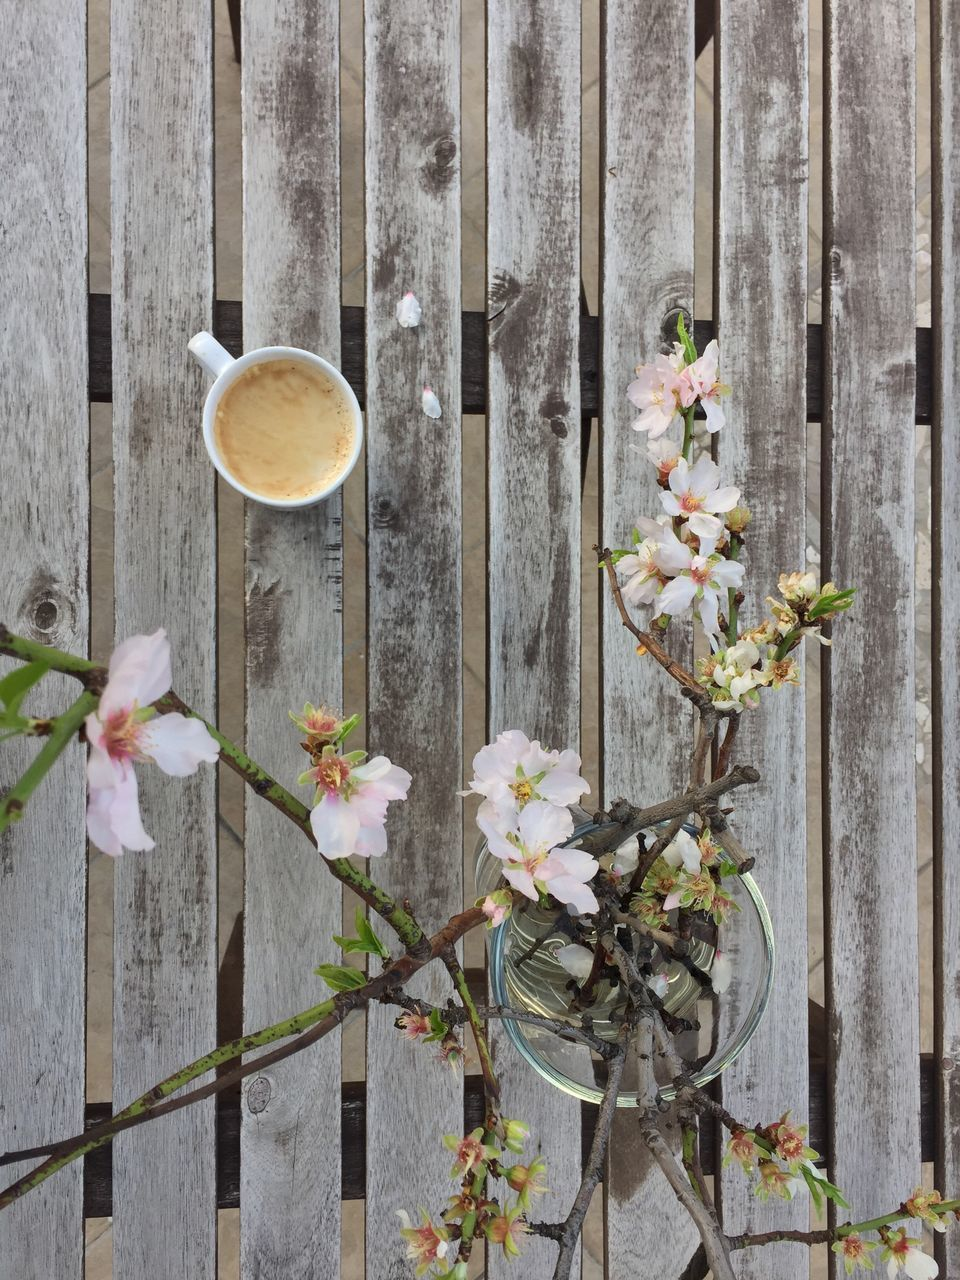 High Angle View Of Coffee Cup By Flower Vase On Wooden Table